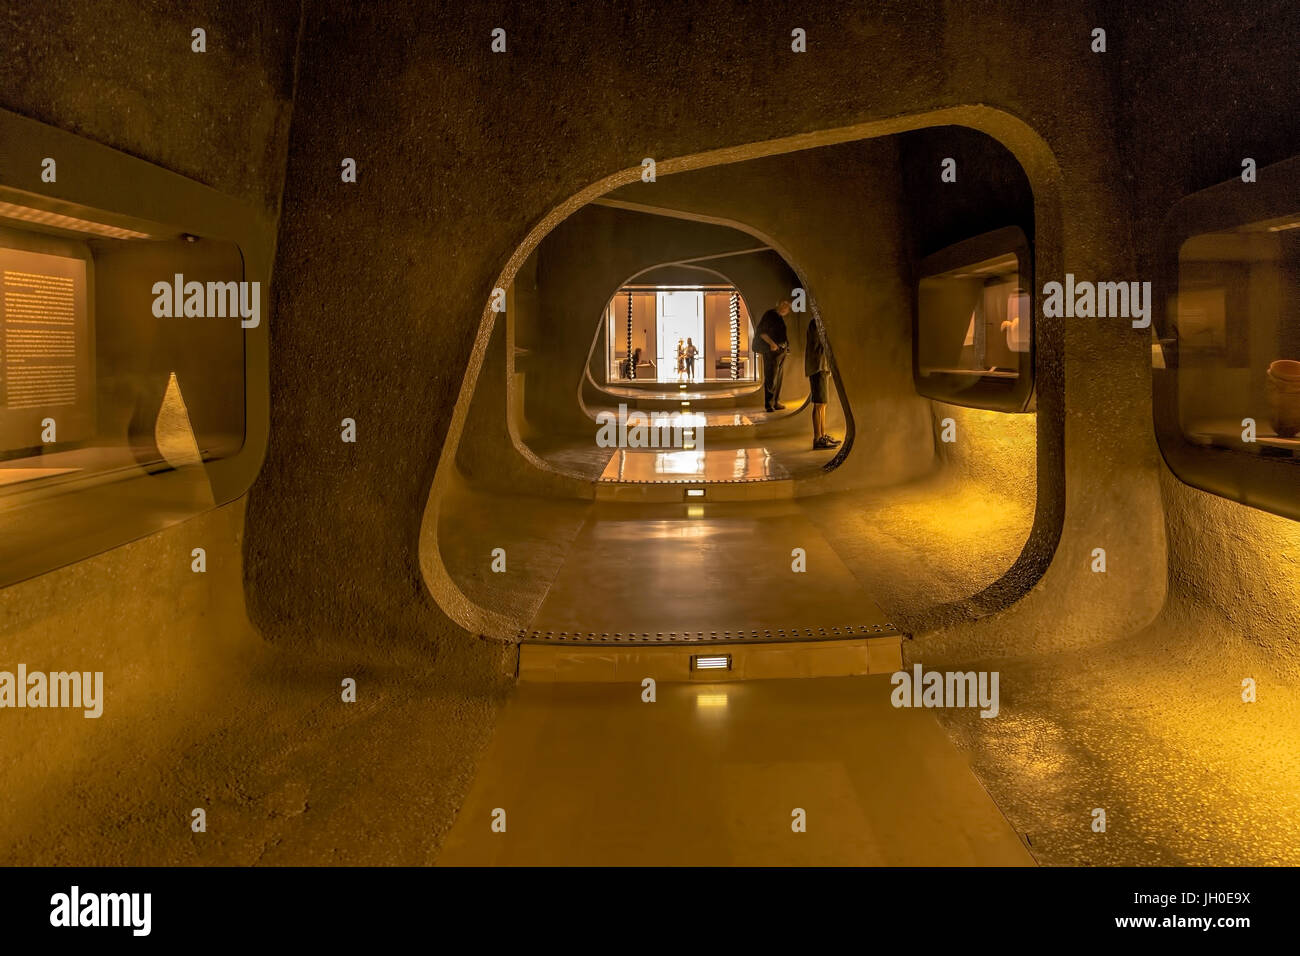 View into a dark cave-like passage with exhibits towards the entrance area of the Israel Museum in Jerusalem, Israel, famous for the Dead Sea Scrolls. Stock Photo